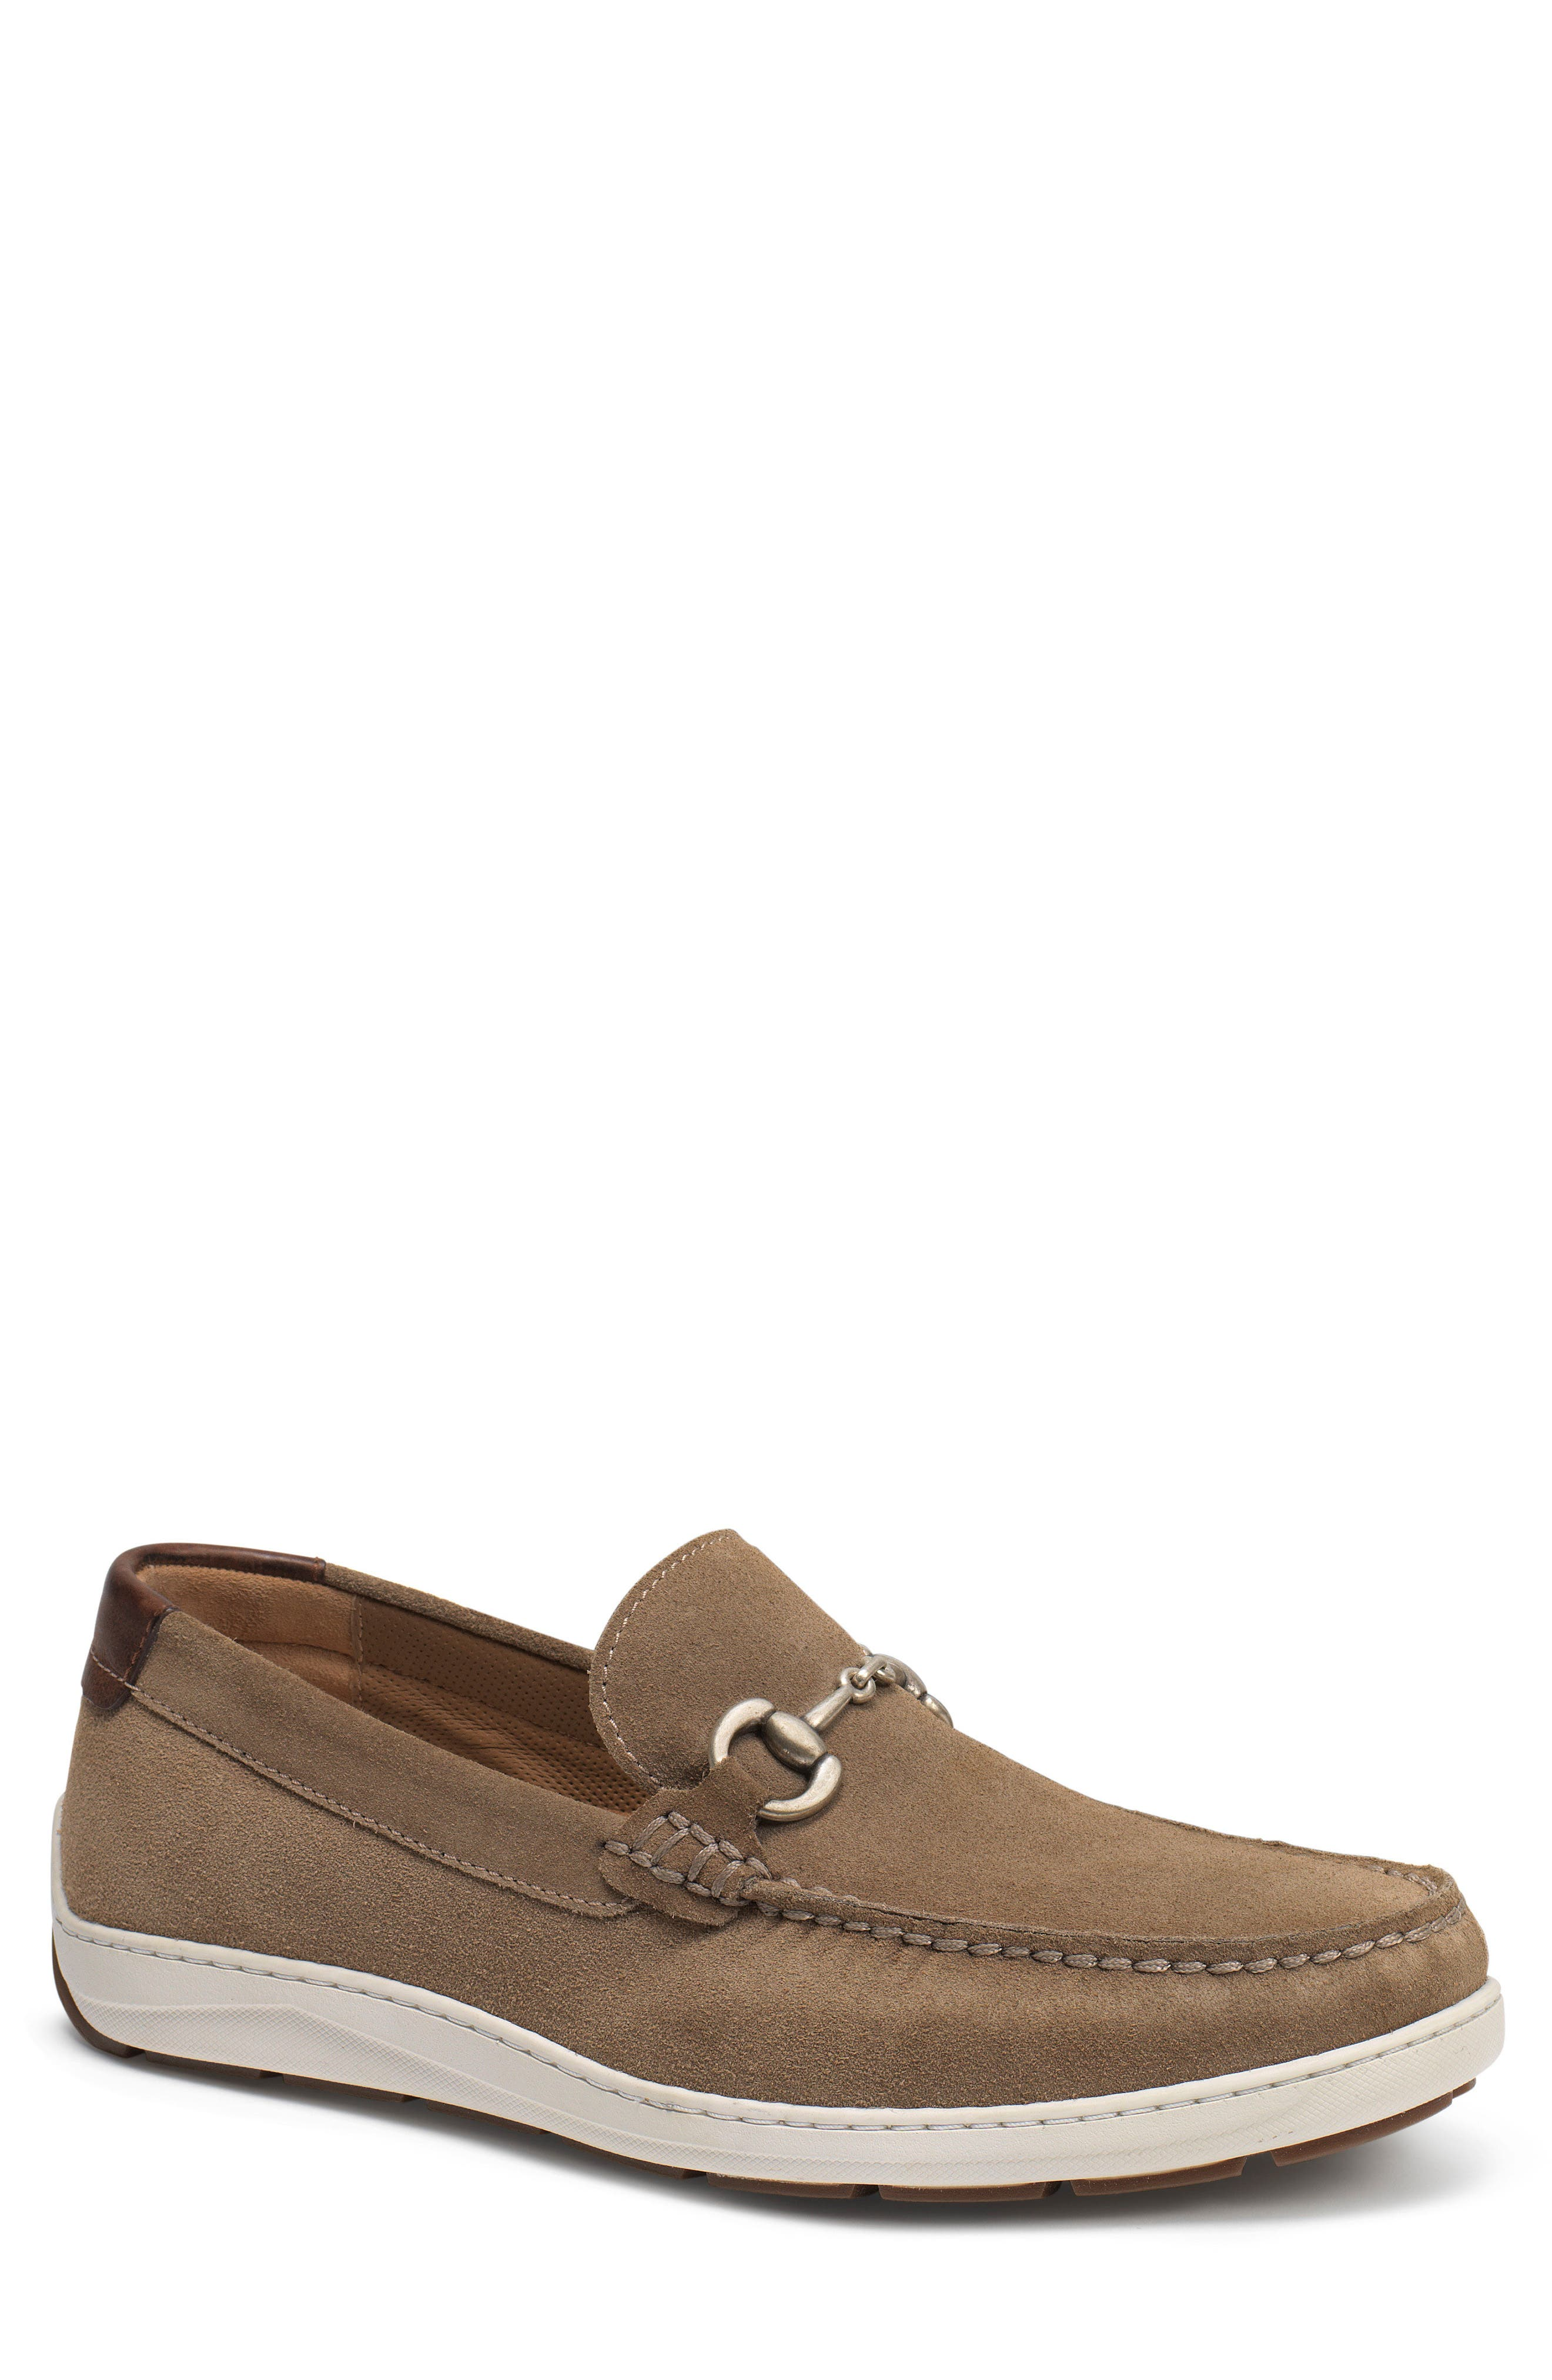 Stalworth Bit Loafer,                             Main thumbnail 1, color,                             Taupe Leather